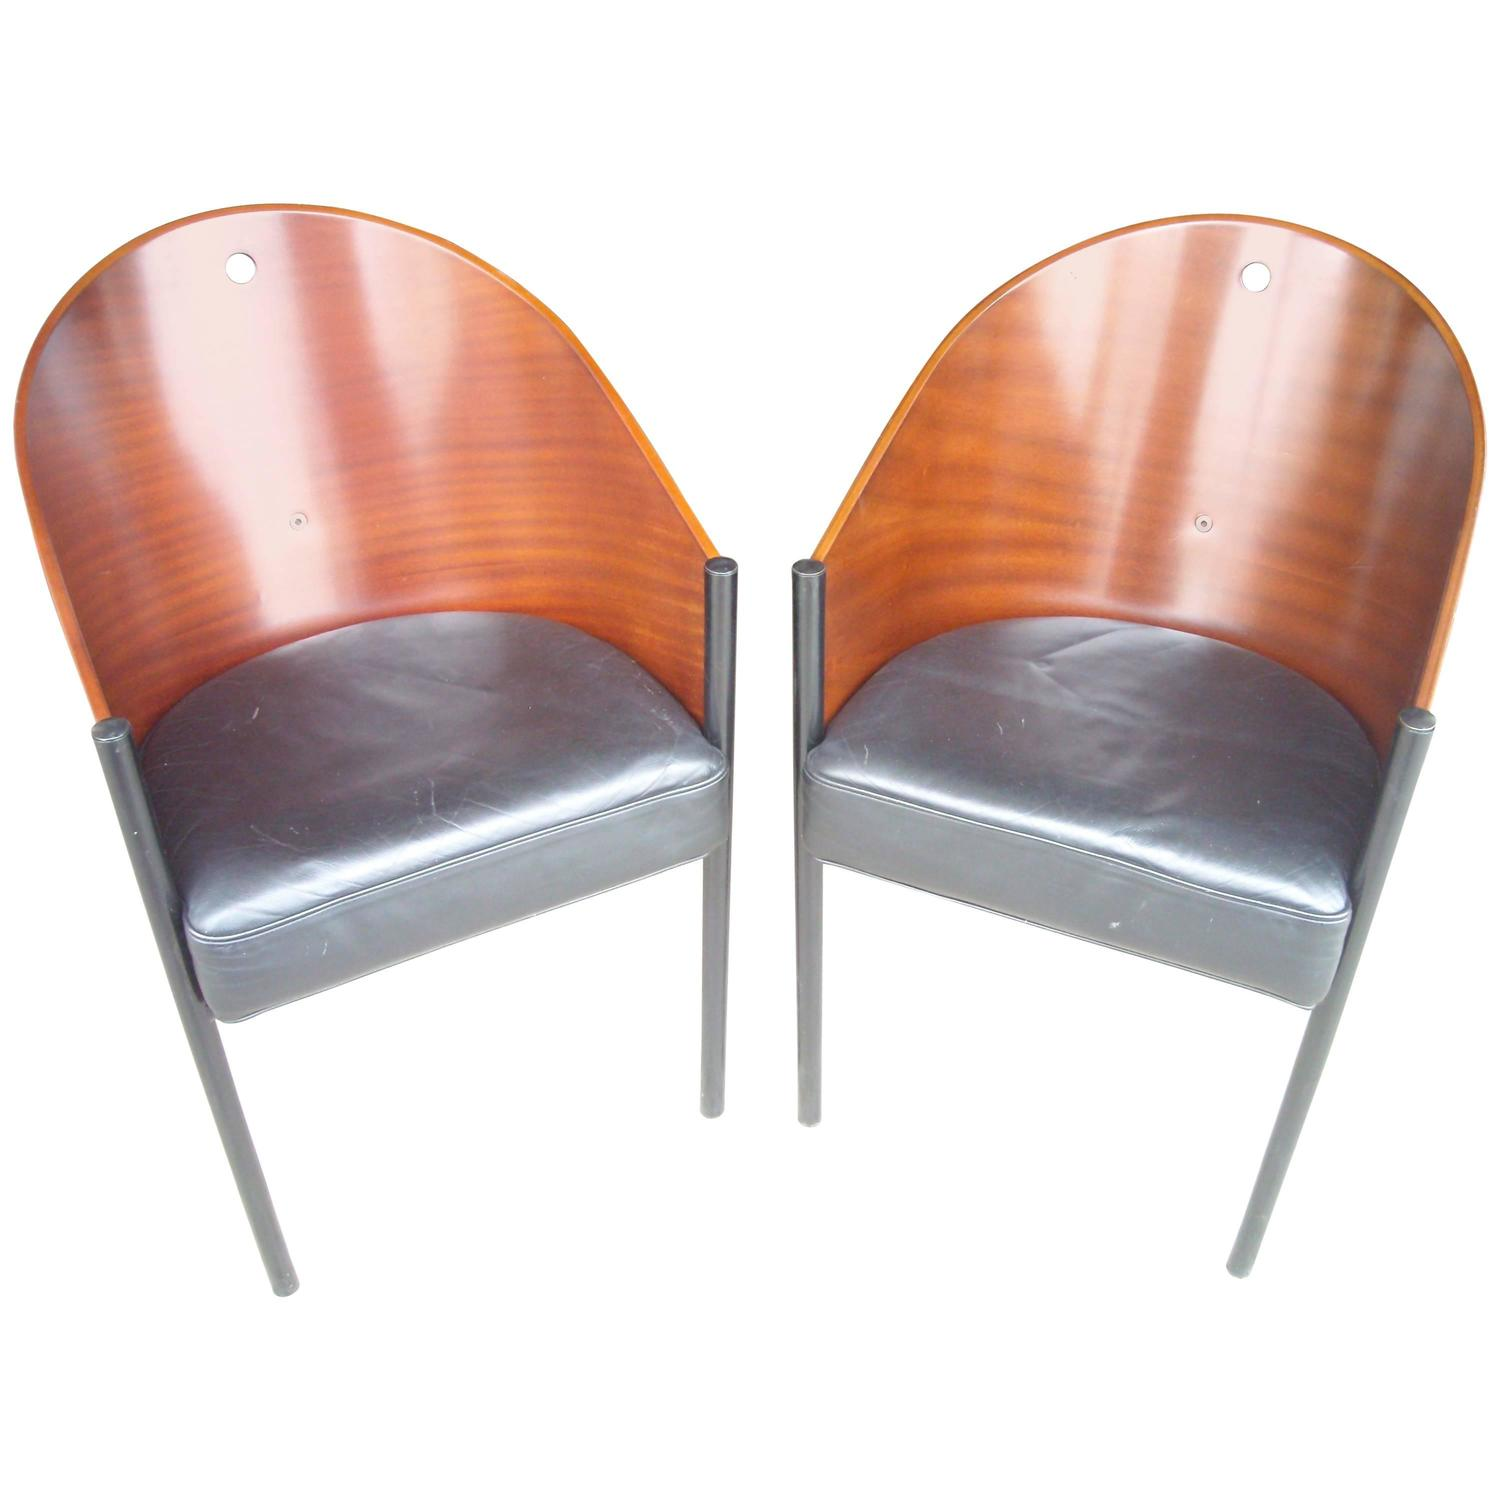 philippe starck chairs 47 for sale at 1stdibs